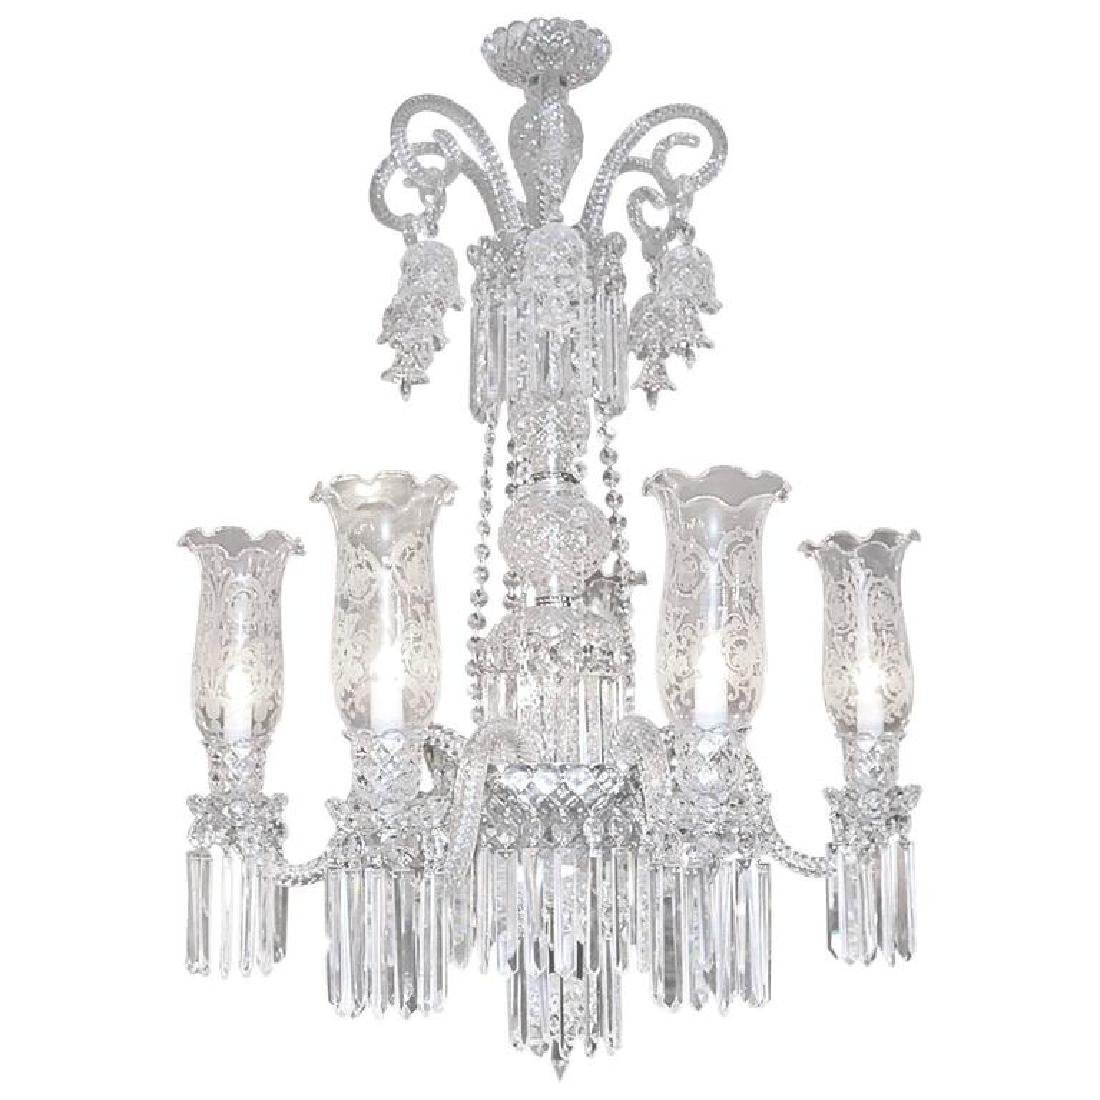 Baccarat style Bohemian Crystal Two-Tier Chandelier